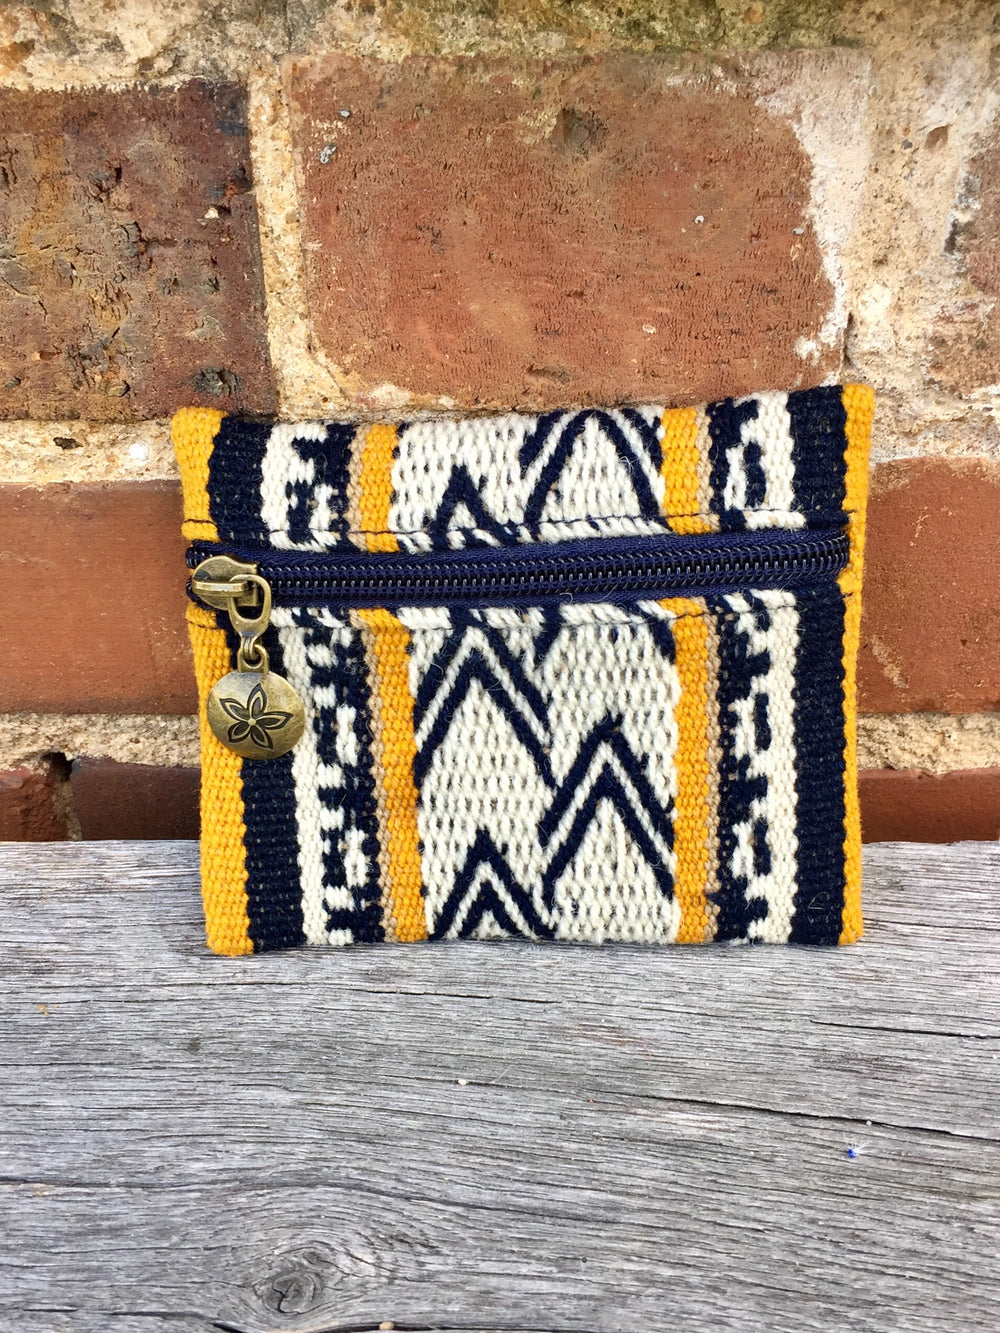 Madidi Coin Purse by SutiSana from Bolivia